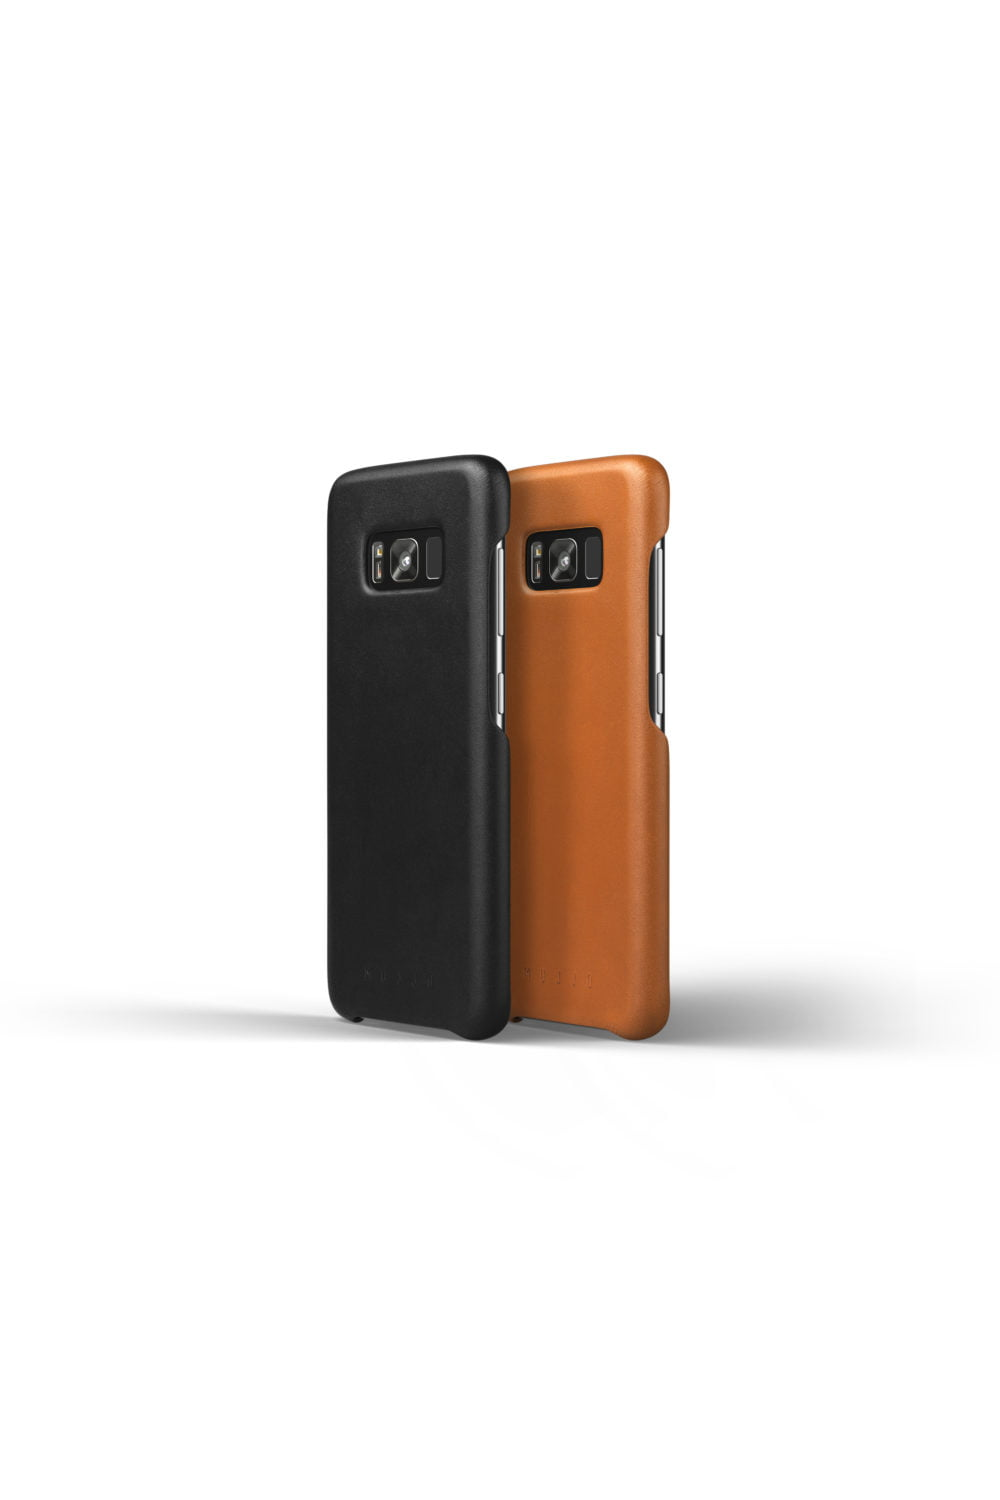 Acclaimed design, coming to S8 and S8+